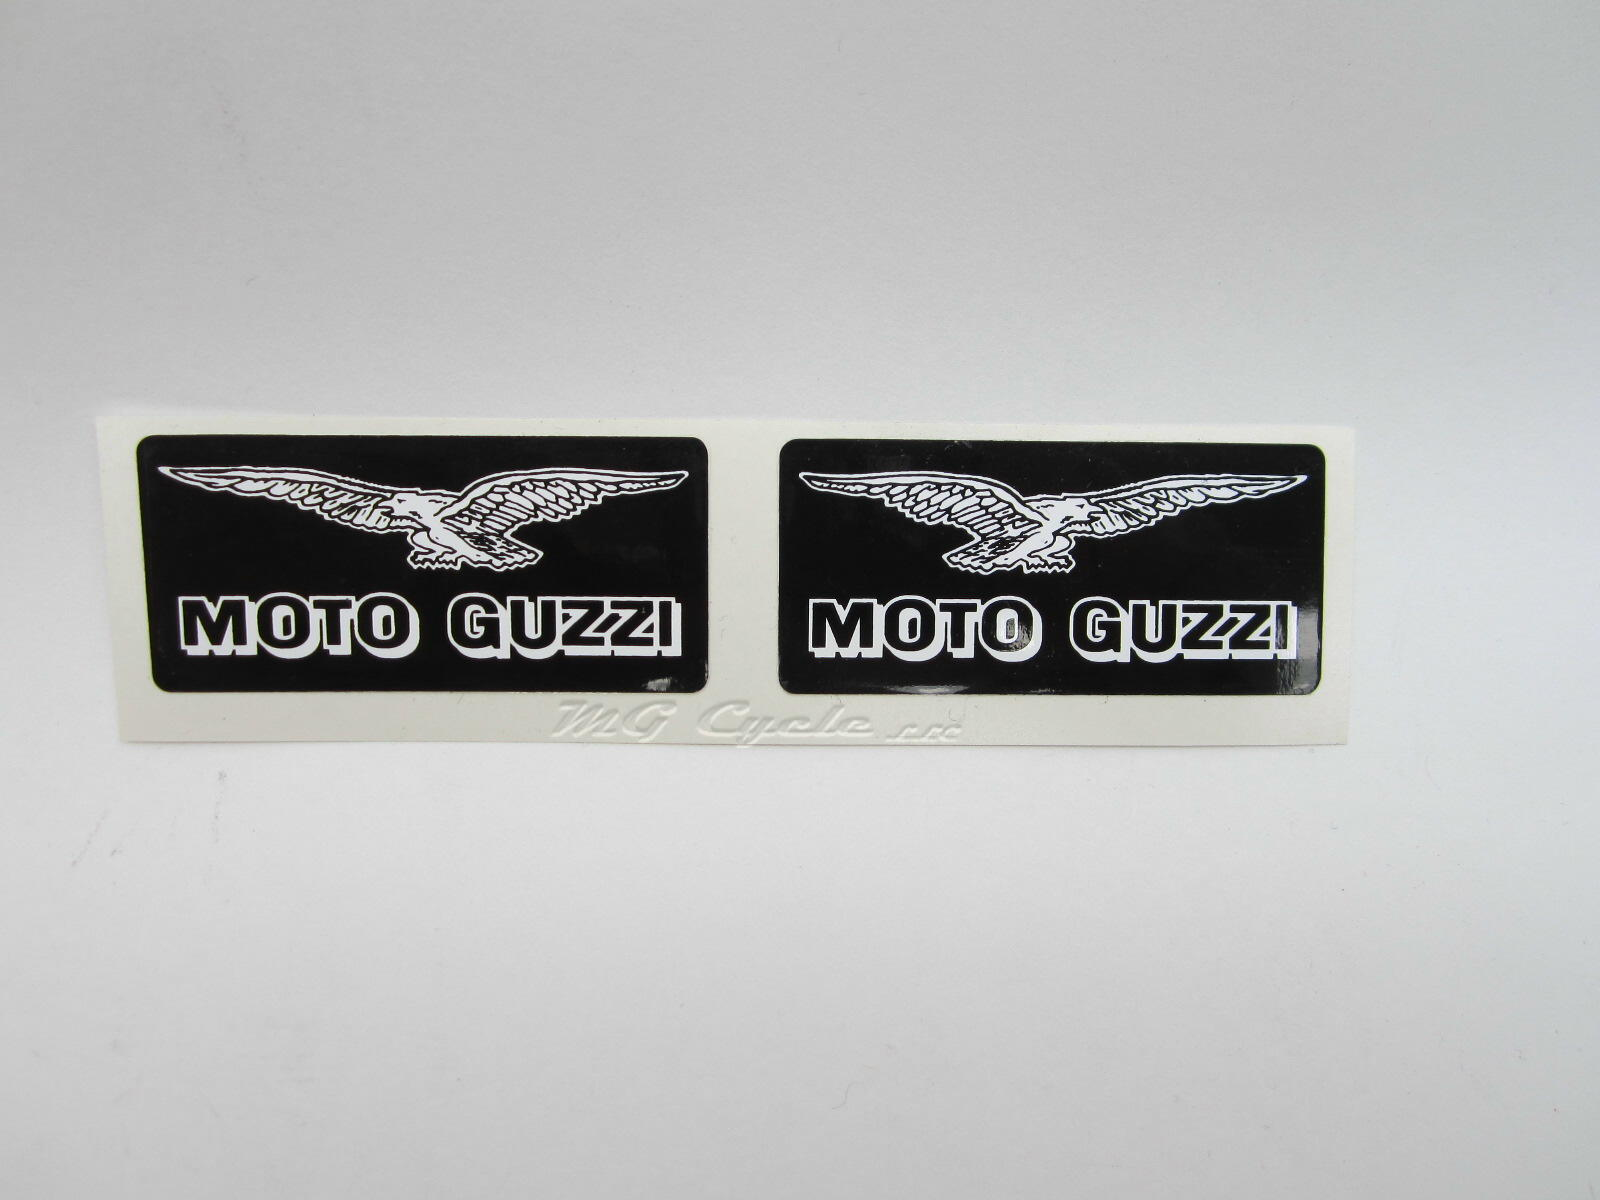 decal set, black and white, Moto Guzzi with eagle, pair